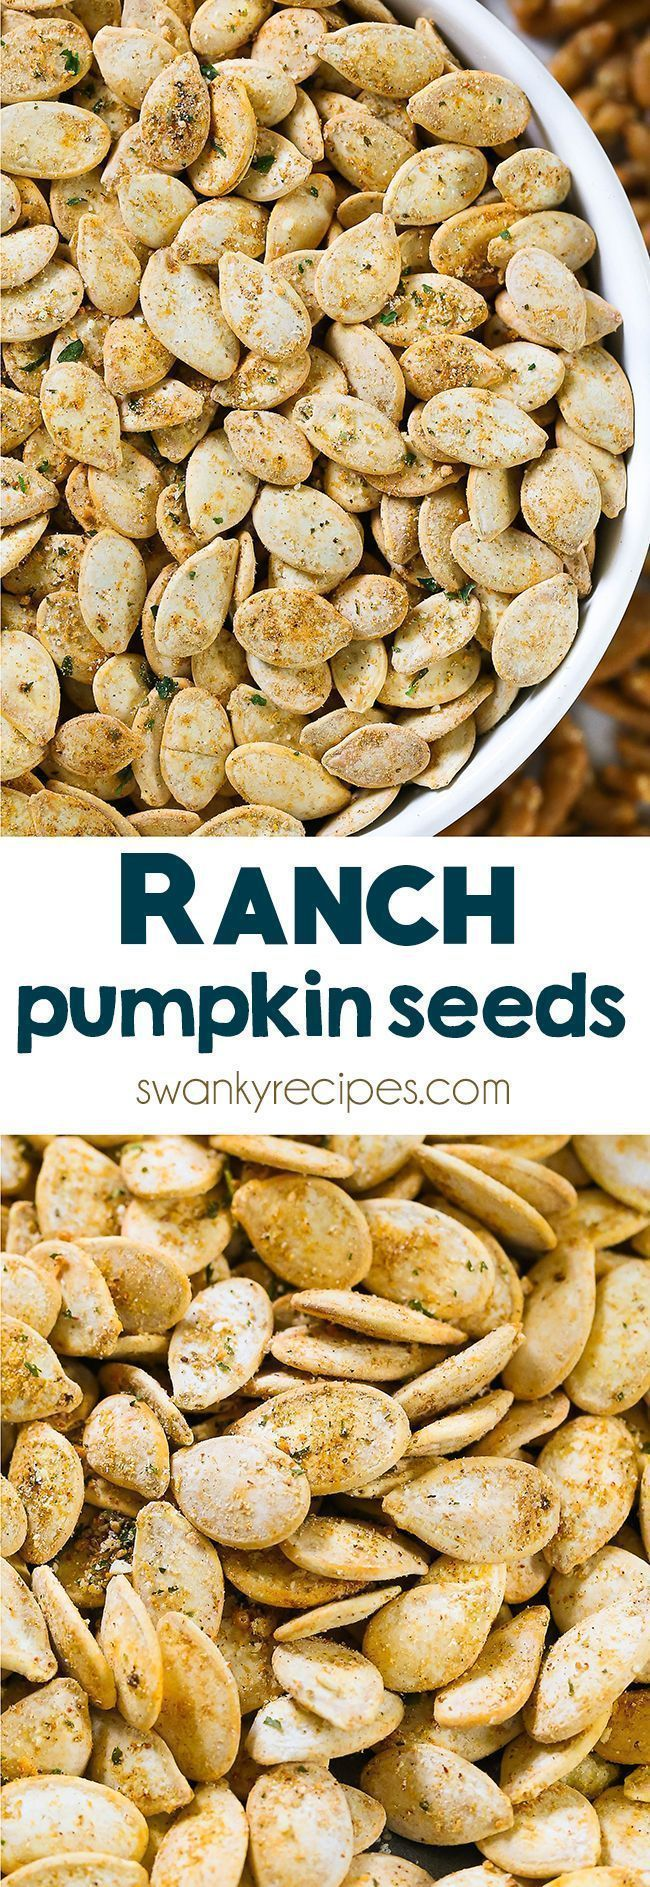 Ranch Pumpkin Seeds - Quick and easy roasted pumpkin seeds with a zesty ranch blend. You'll fall in love with this healthy Ranch Pumpkin Seed recipe. Perfect pumpkin seed snack this autumn. #roastedpumpkinseedsrecipe Ranch Pumpkin Seeds - Quick and easy roasted pumpkin seeds with a zesty ranch blend. You'll fall in love with this healthy Ranch Pumpkin Seed recipe. Perfect pumpkin seed snack this autumn. #roastingpumpkinseeds Ranch Pumpkin Seeds - Quick and easy roasted pumpkin seeds with a zesty #roastedpumpkinseeds